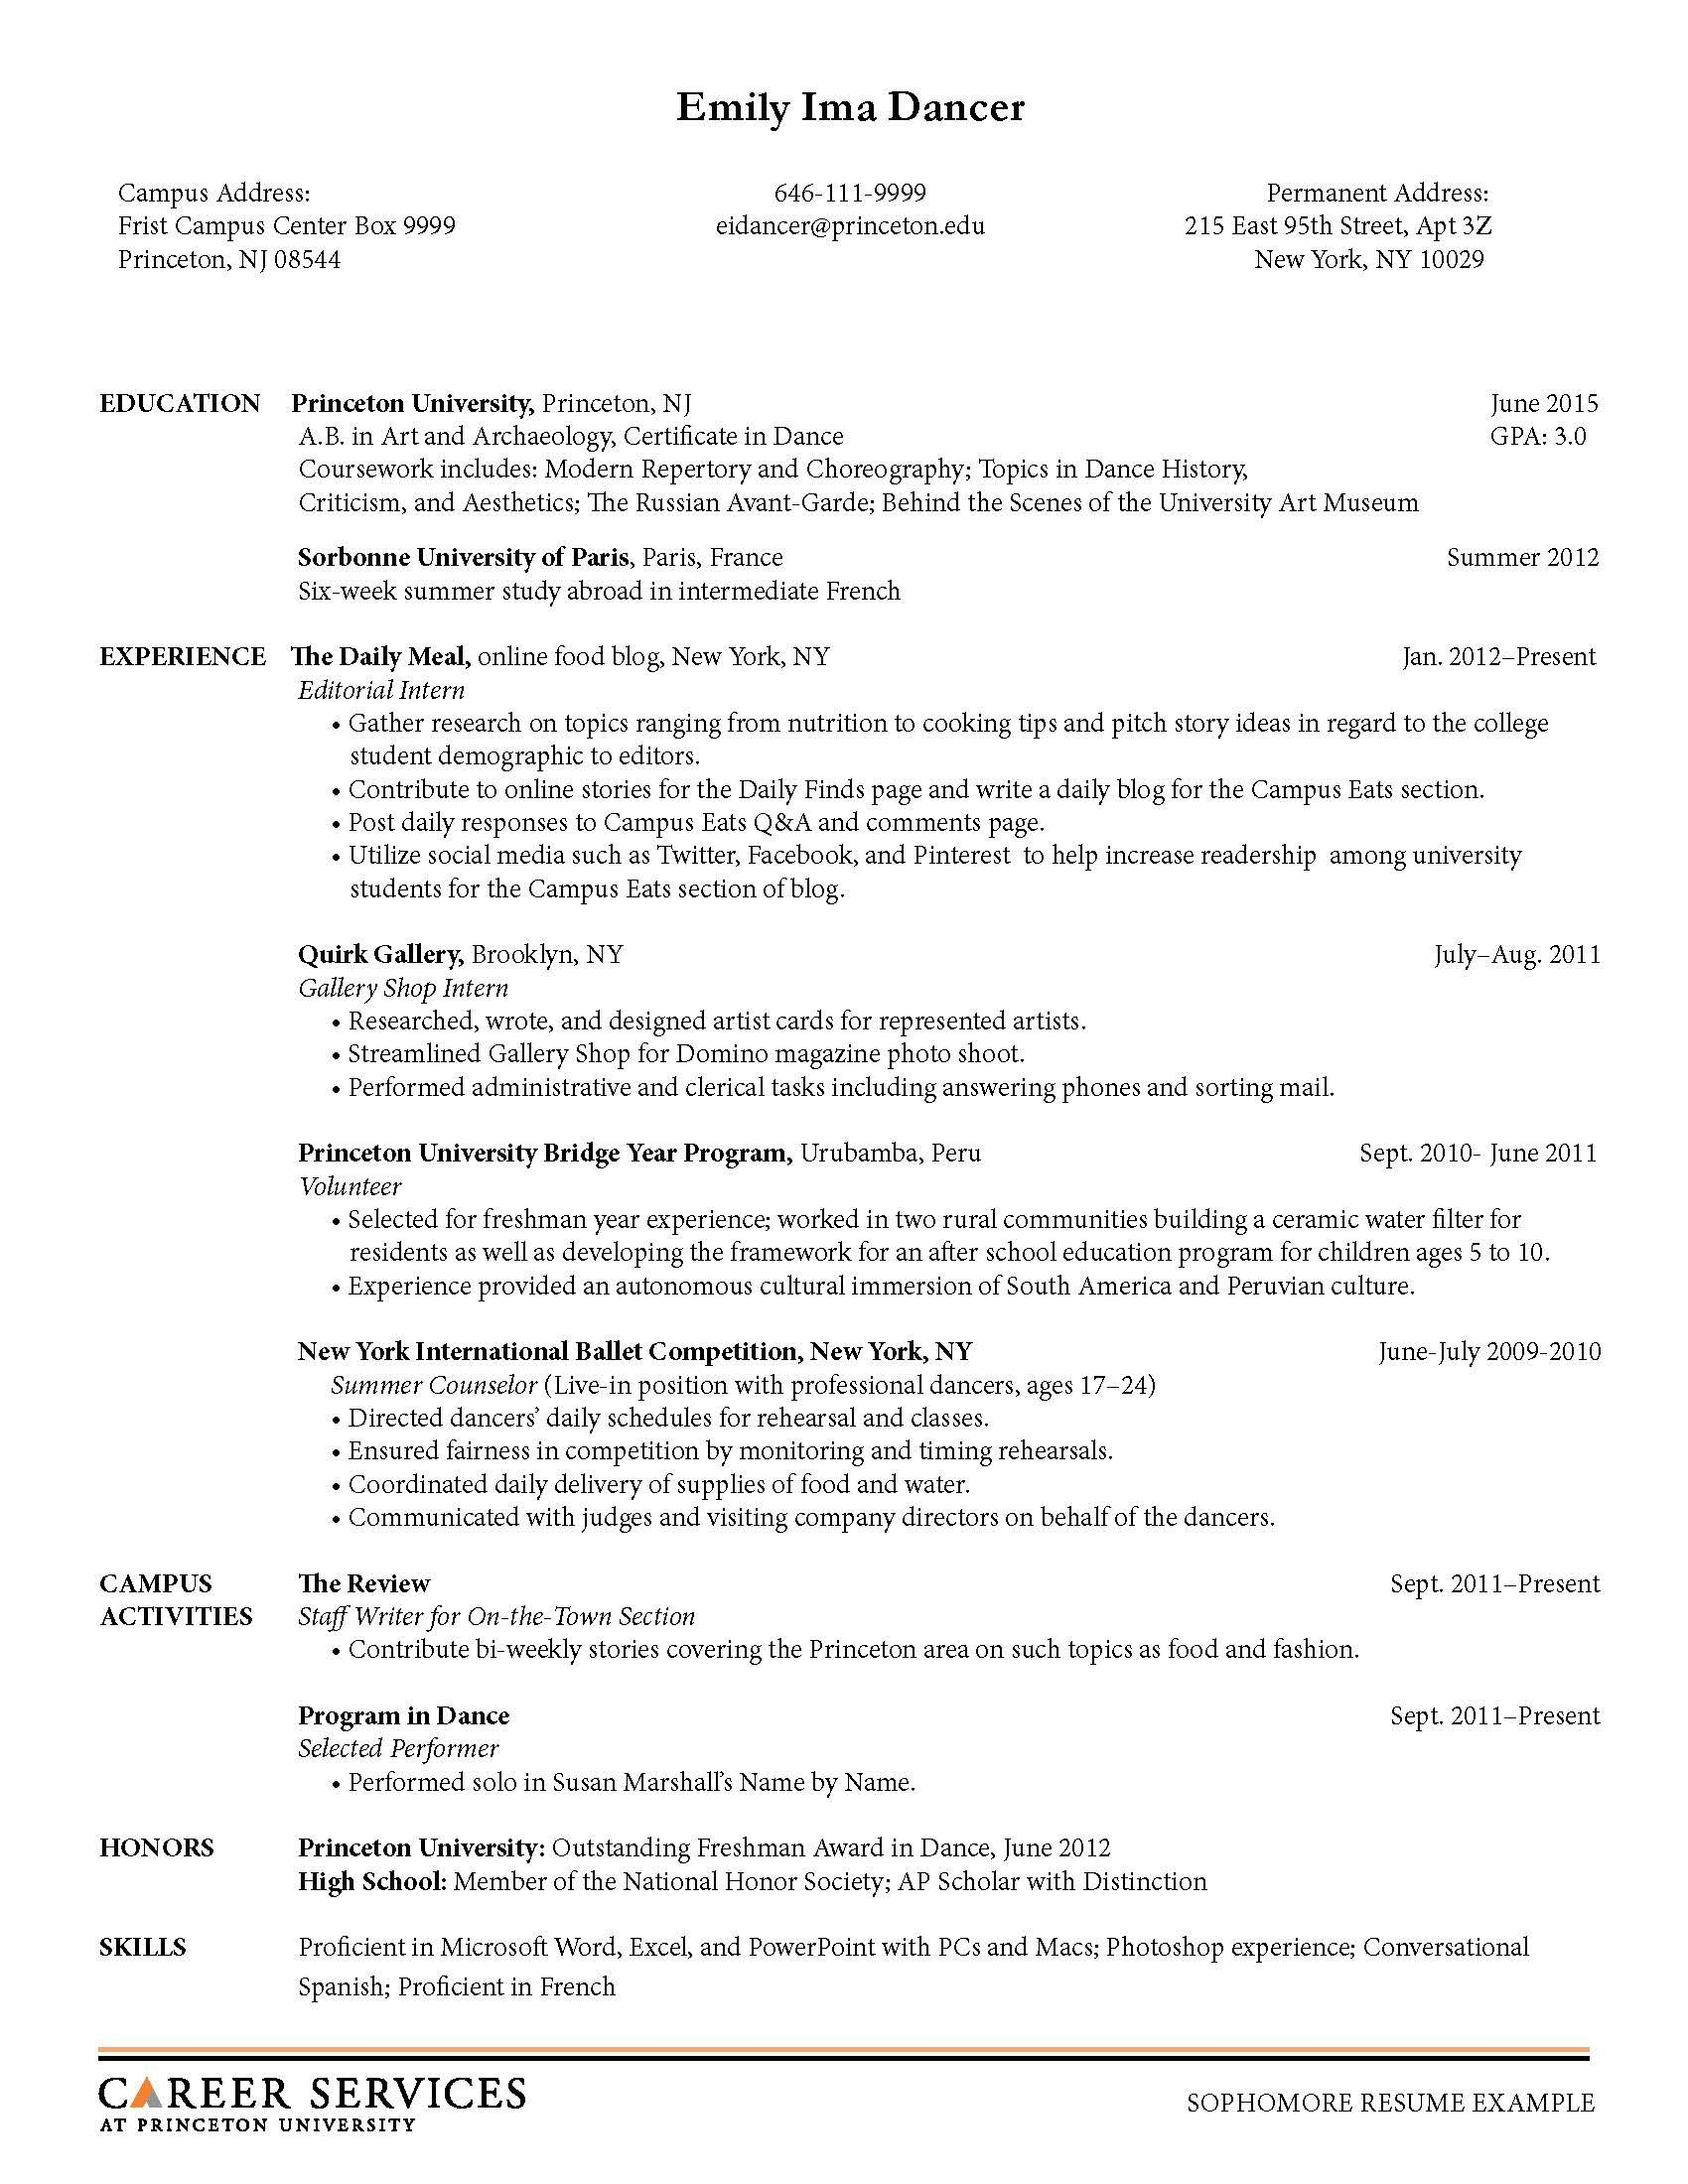 Opposenewapstandardsus  Stunning Sample Resume Resume And Career On Pinterest With Lovely Help Desk Resume Sample Besides Secretary Job Description For Resume Furthermore Massage Therapist Resume Sample With Amazing Economics Resume Also Fedex Resume In Addition Achievements Resume And Pharmacist Resumes As Well As Hair Stylist Resume Template Additionally Coffee Shop Resume From Pinterestcom With Opposenewapstandardsus  Lovely Sample Resume Resume And Career On Pinterest With Amazing Help Desk Resume Sample Besides Secretary Job Description For Resume Furthermore Massage Therapist Resume Sample And Stunning Economics Resume Also Fedex Resume In Addition Achievements Resume From Pinterestcom